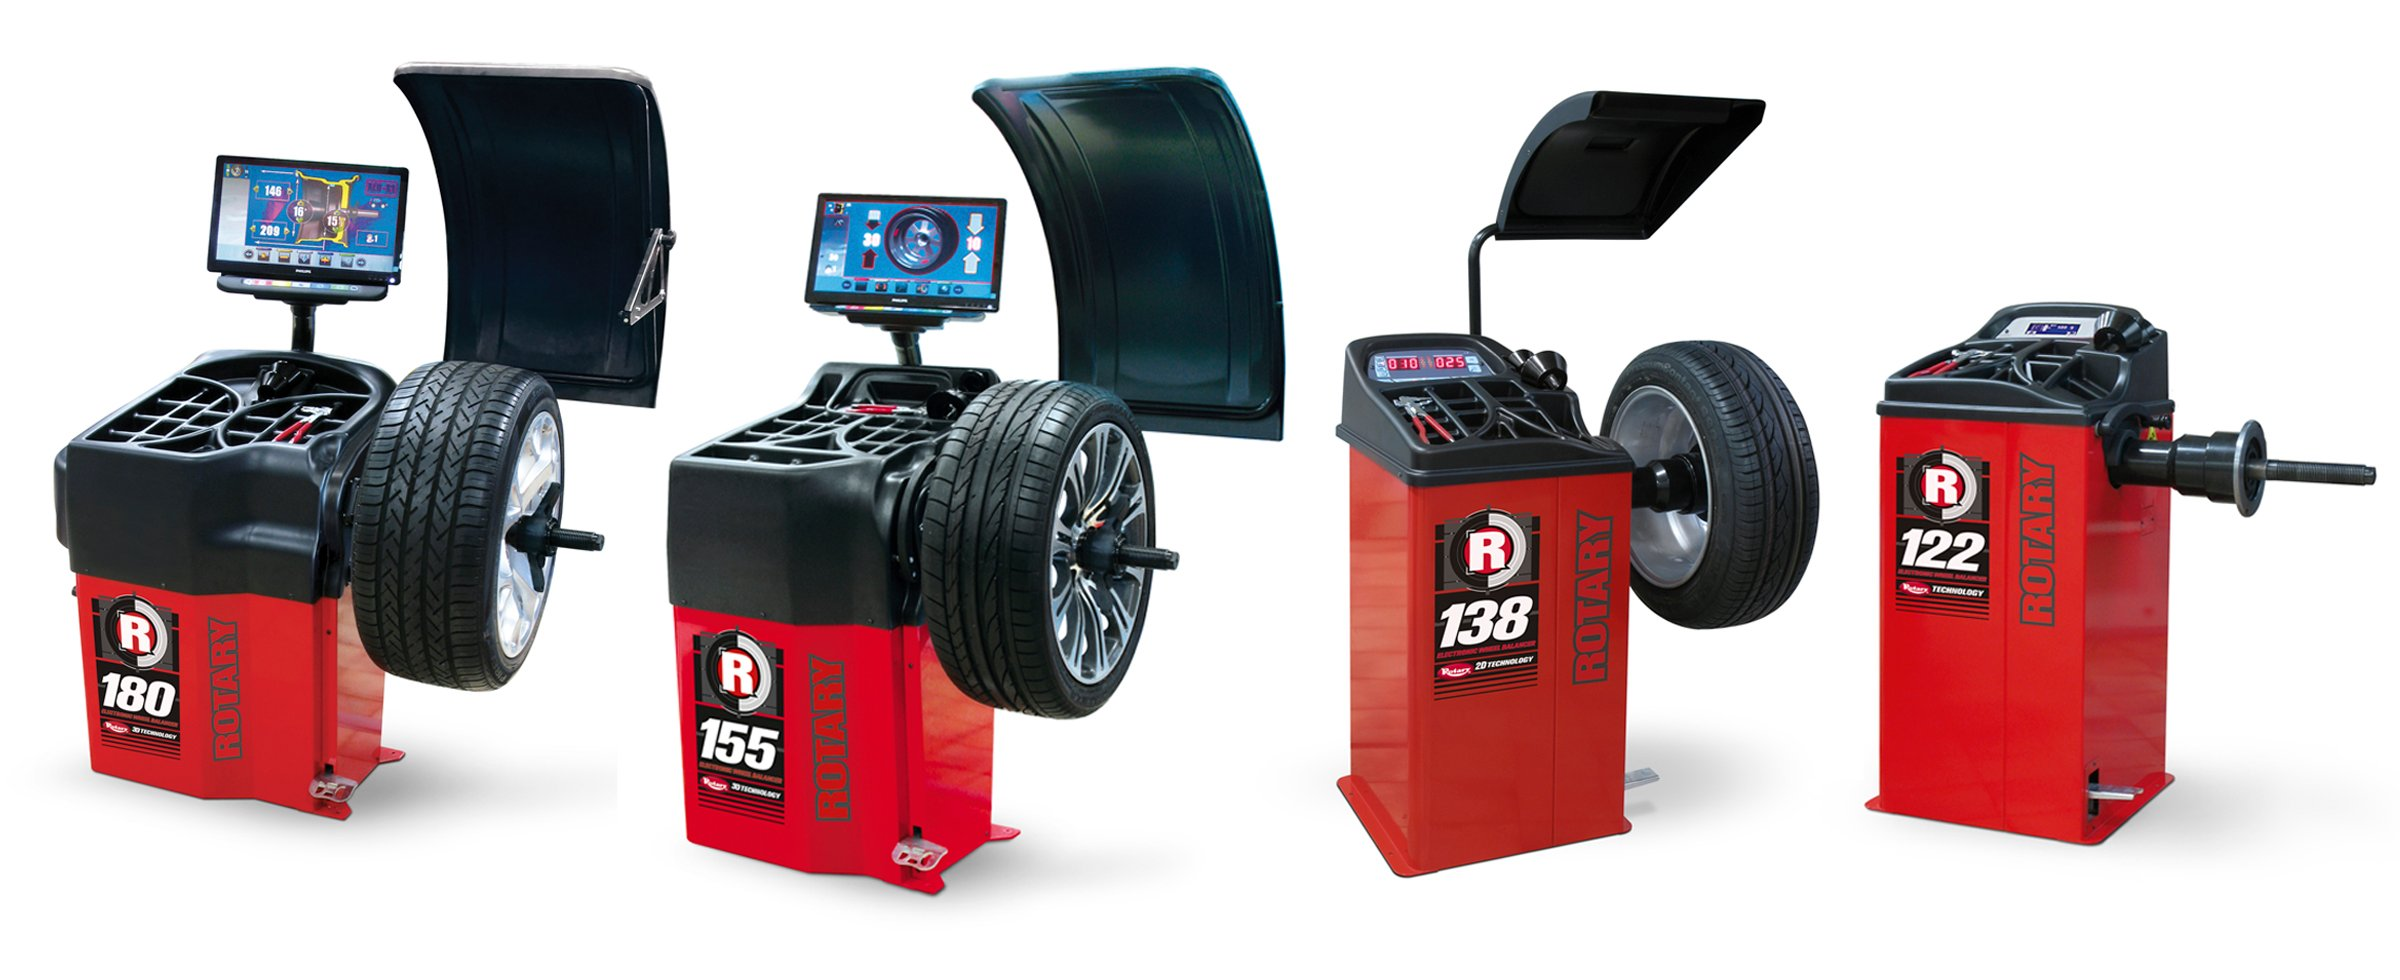 Vehicle Service Group Introduces Line of Rotary Wheel Balancers